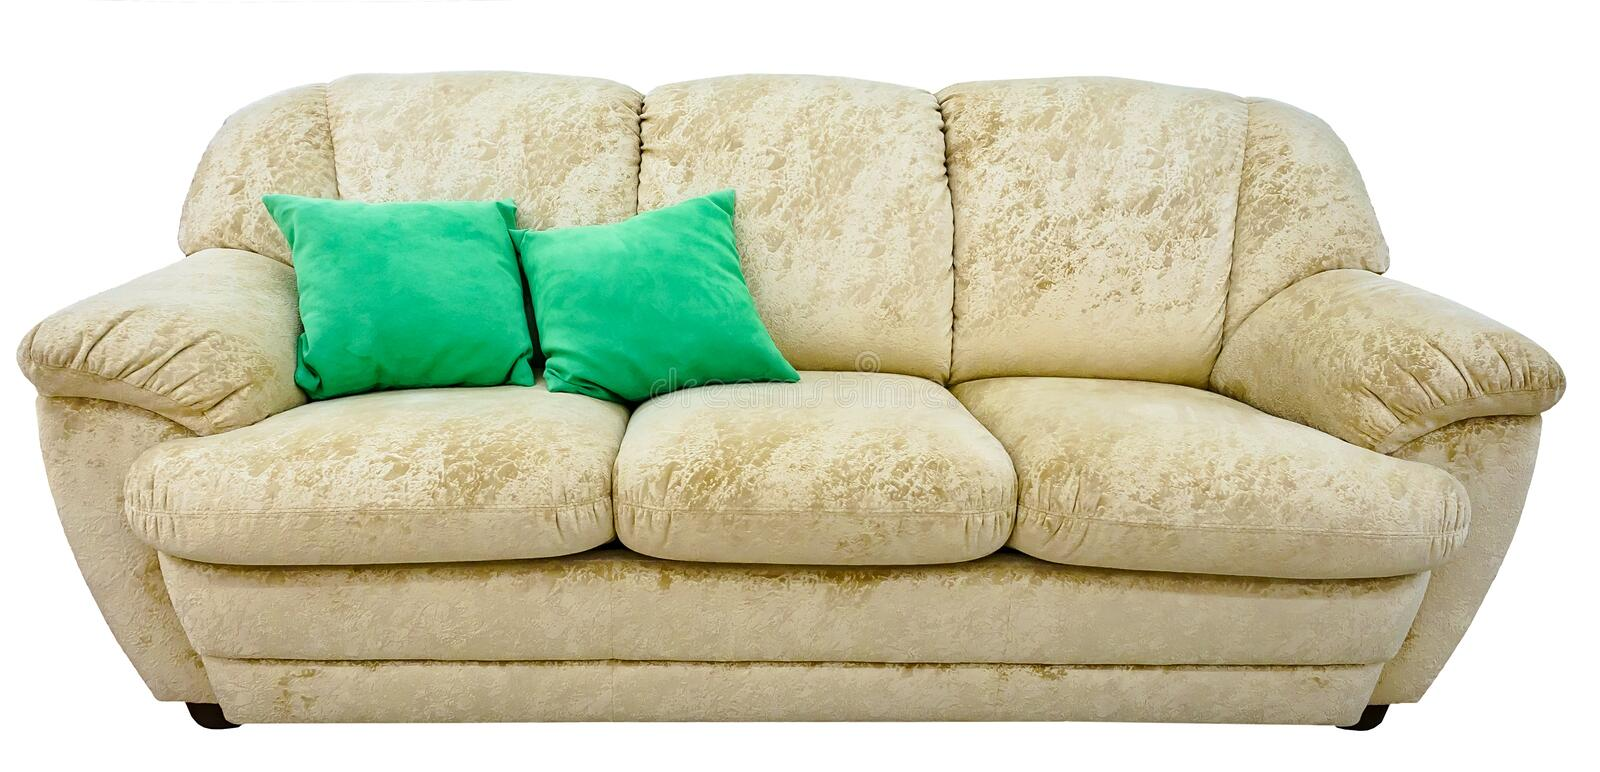 Beige sofa. Soft velour fabric couch. Classic modern divan on isolated background.  stock photos